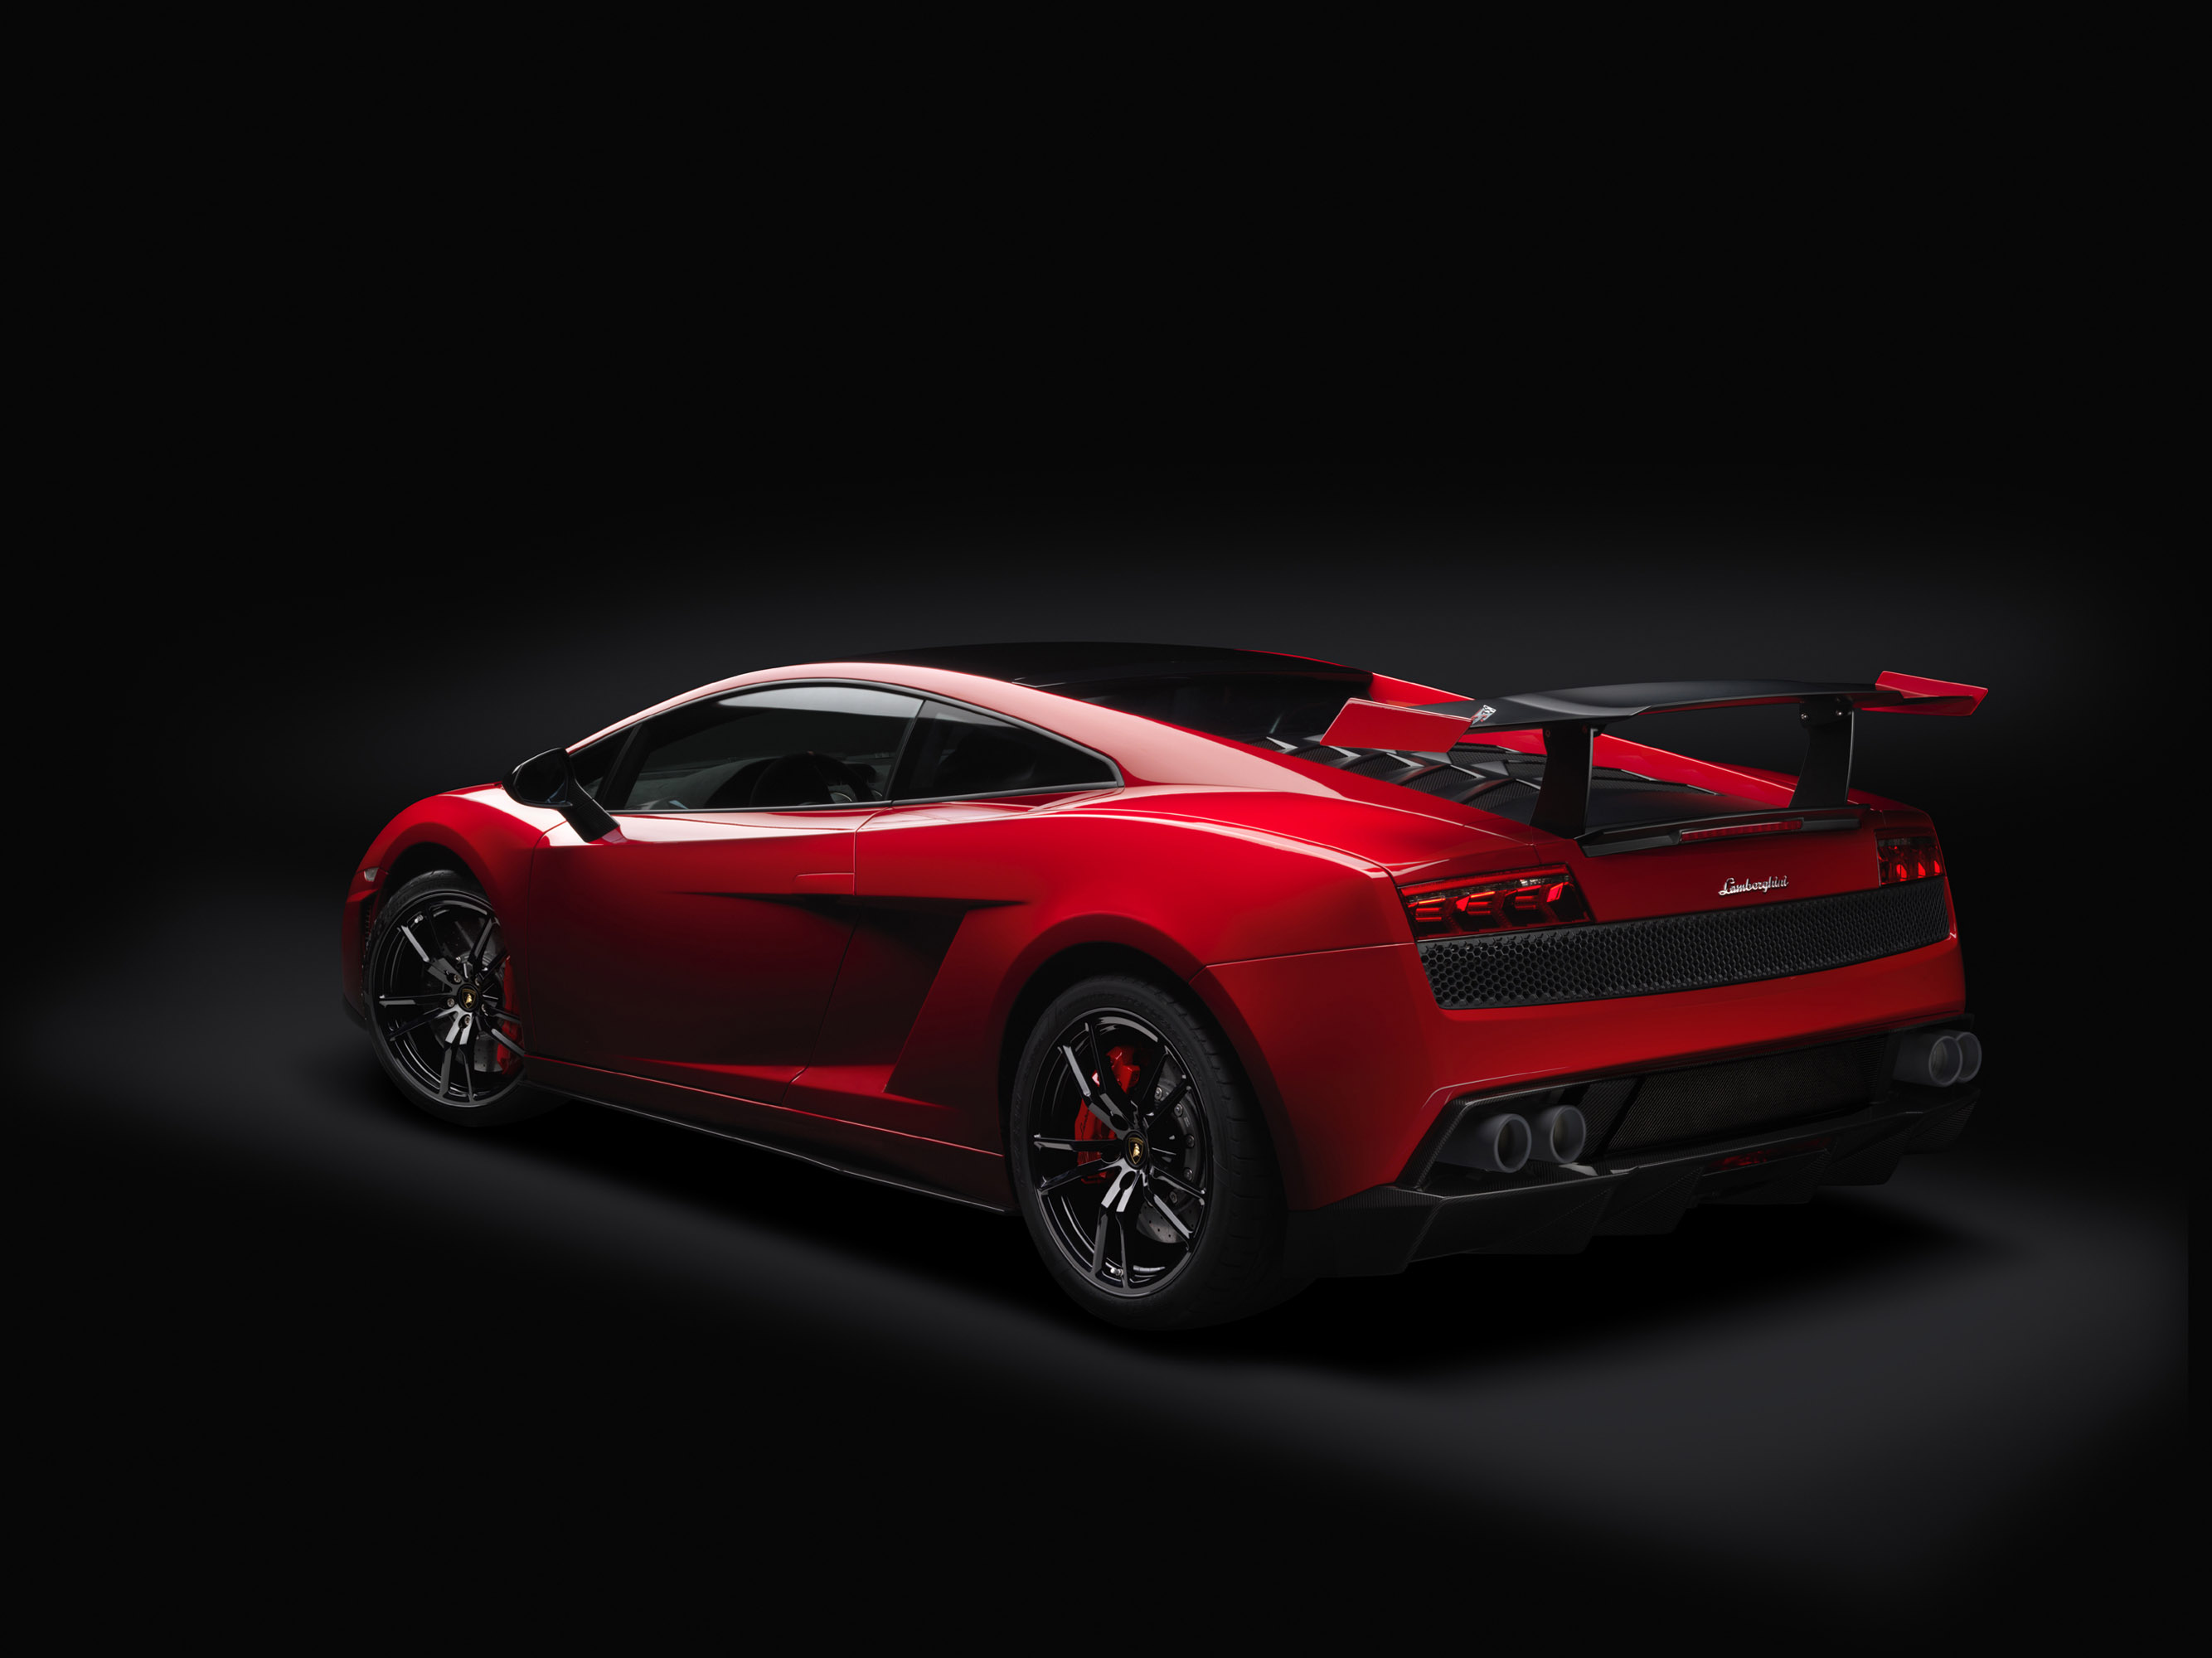 2012 Lamborghini Gallardo LP 570-4 Super Trofeo Stradale Picture #4 of 16